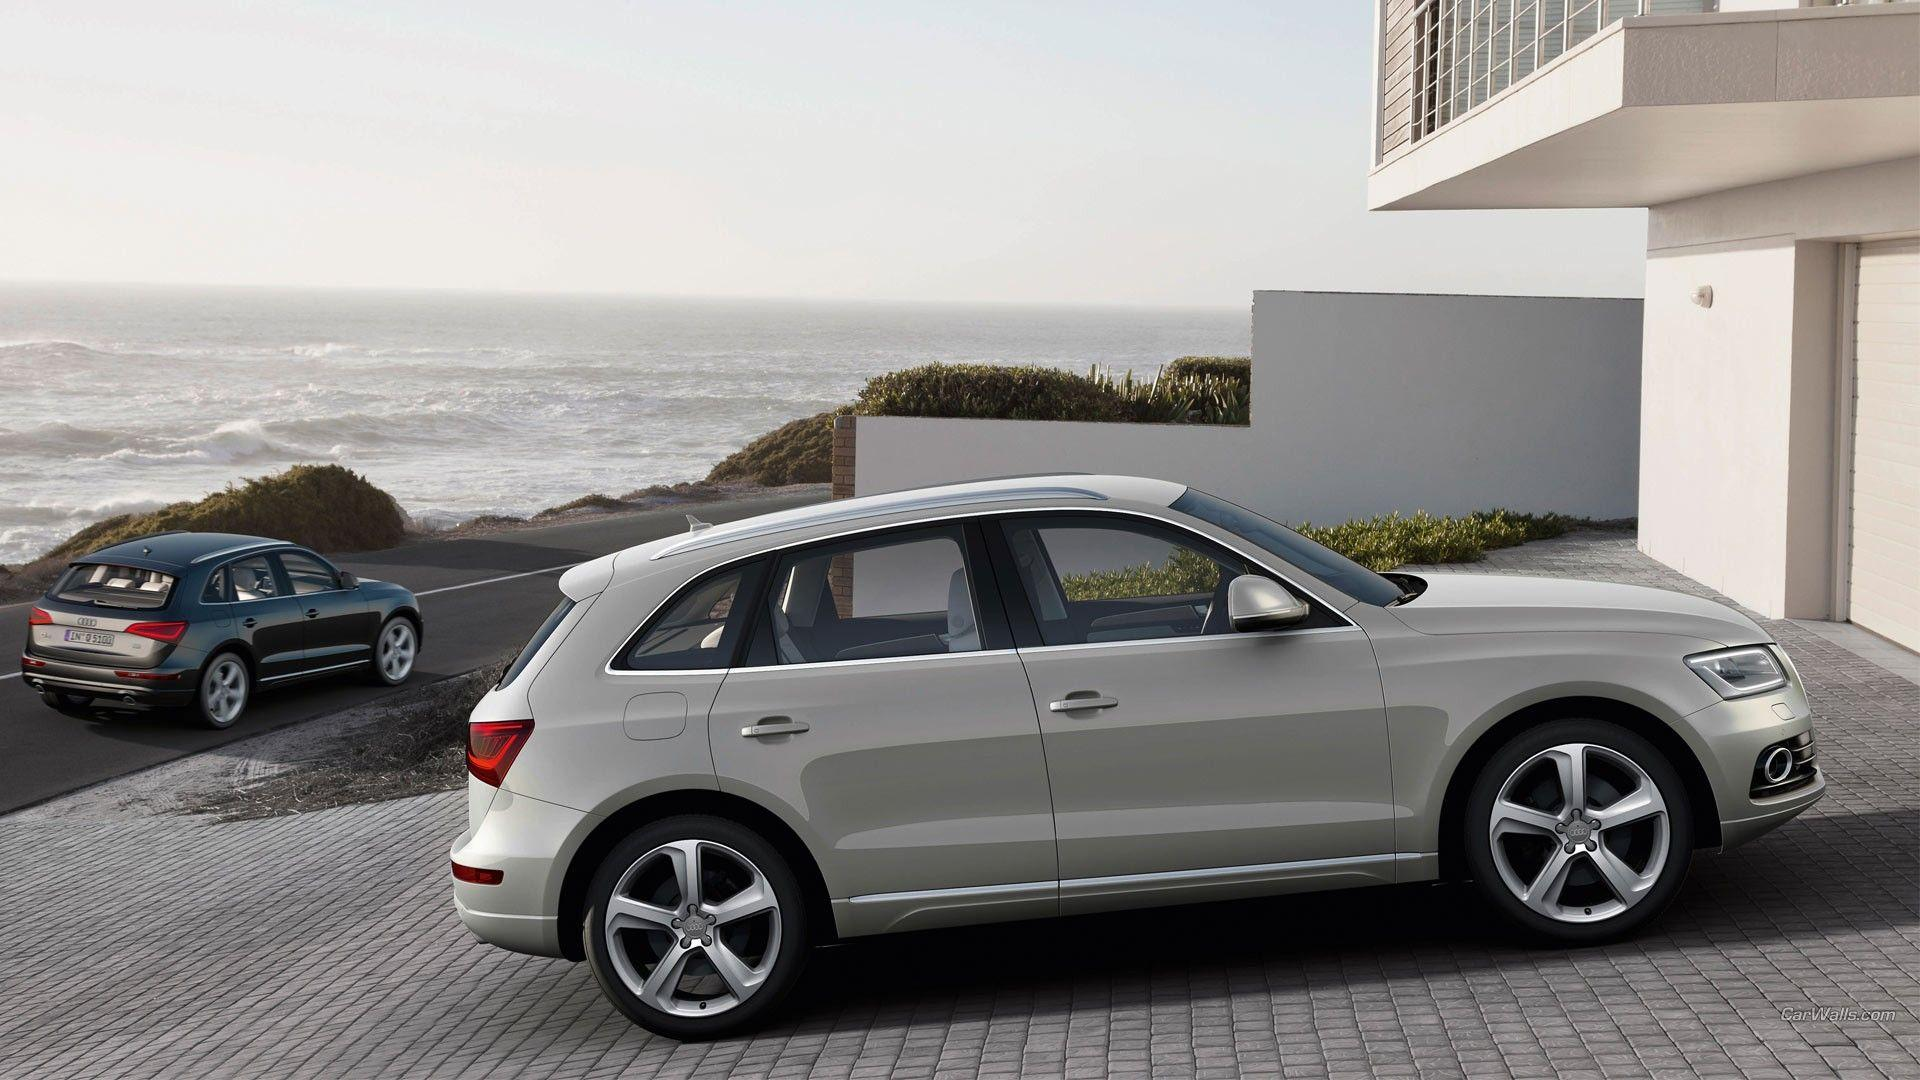 New Audi Q5 Car Pictures HD Wallpapers Image Download Free